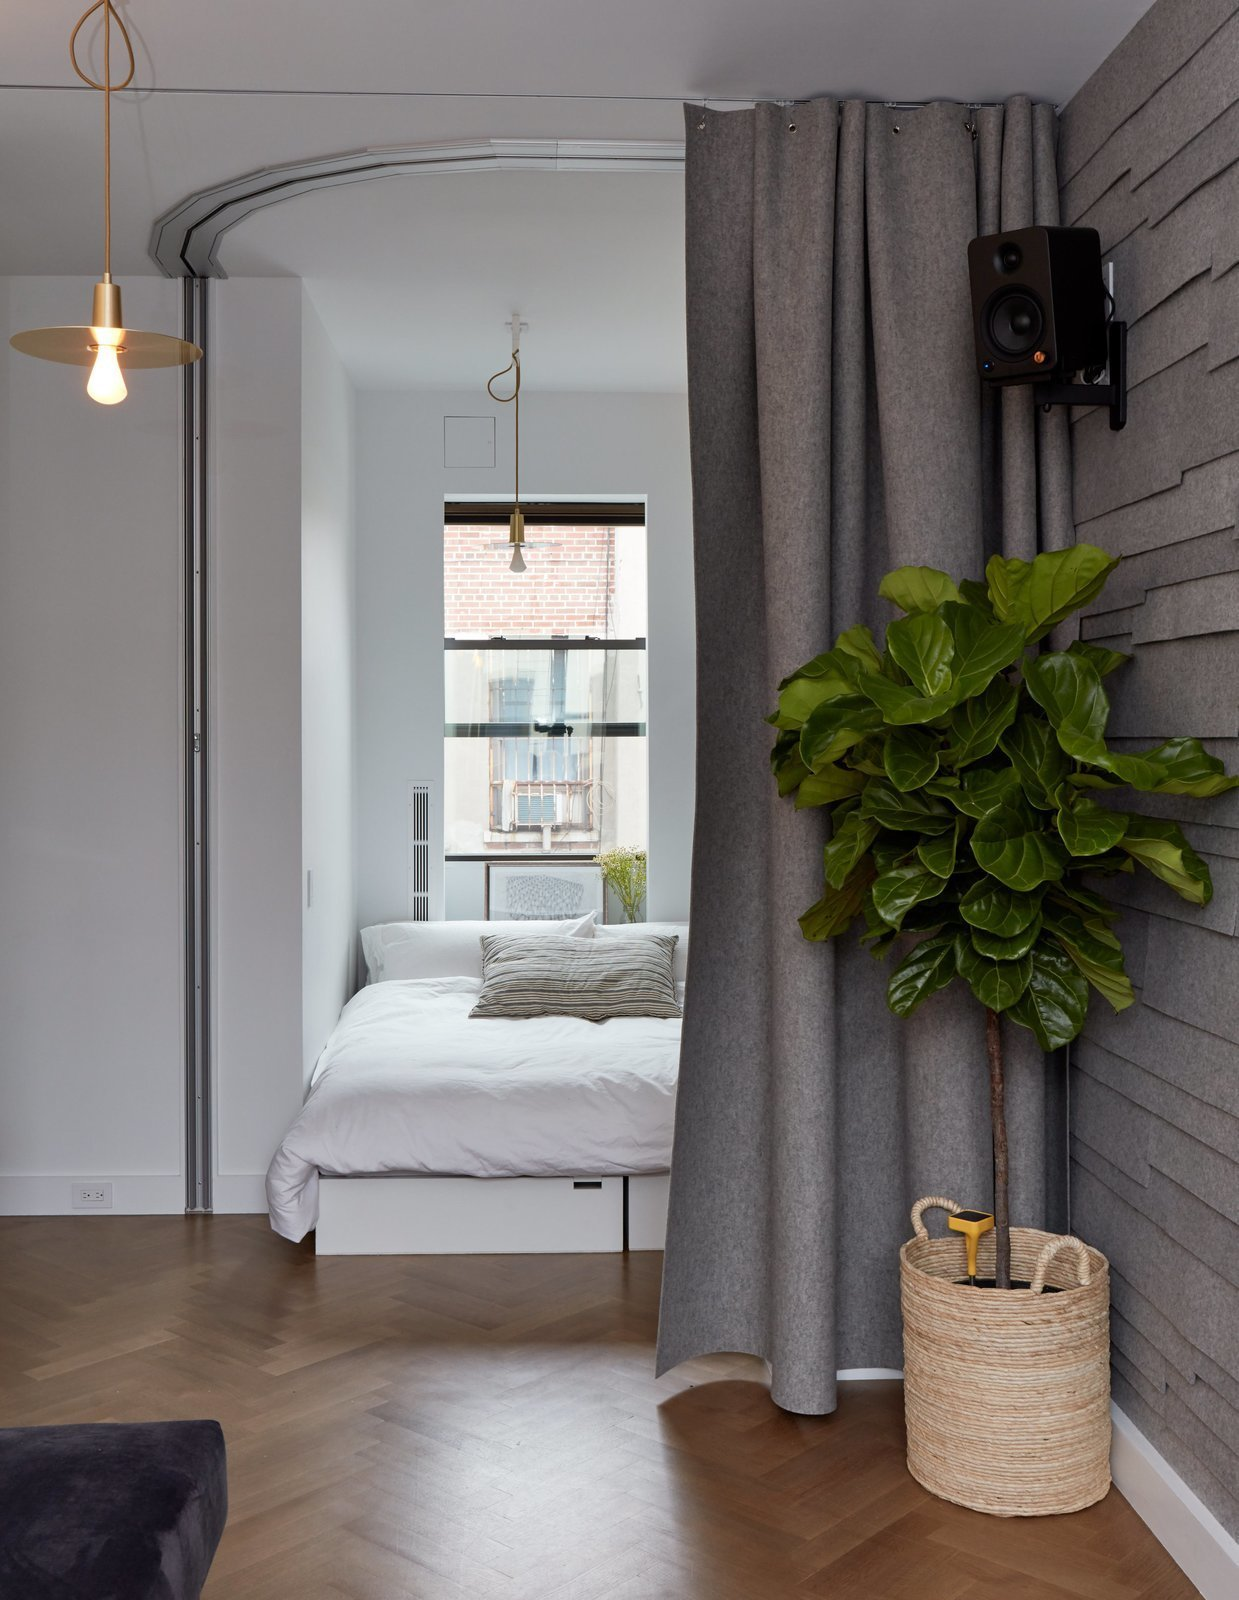 Small space champion Graham Hill's 350-square-foot apartment has an office that flips into a sleeping corner with seating cubes that can be arranged to form a bed and a curved Hufcor accordion door. Tagged: Bedroom, Medium Hardwood Floor, Bed, and Pendant Lighting.  Photo 6 of 11 in 11 Hidden Beds in Small Homes